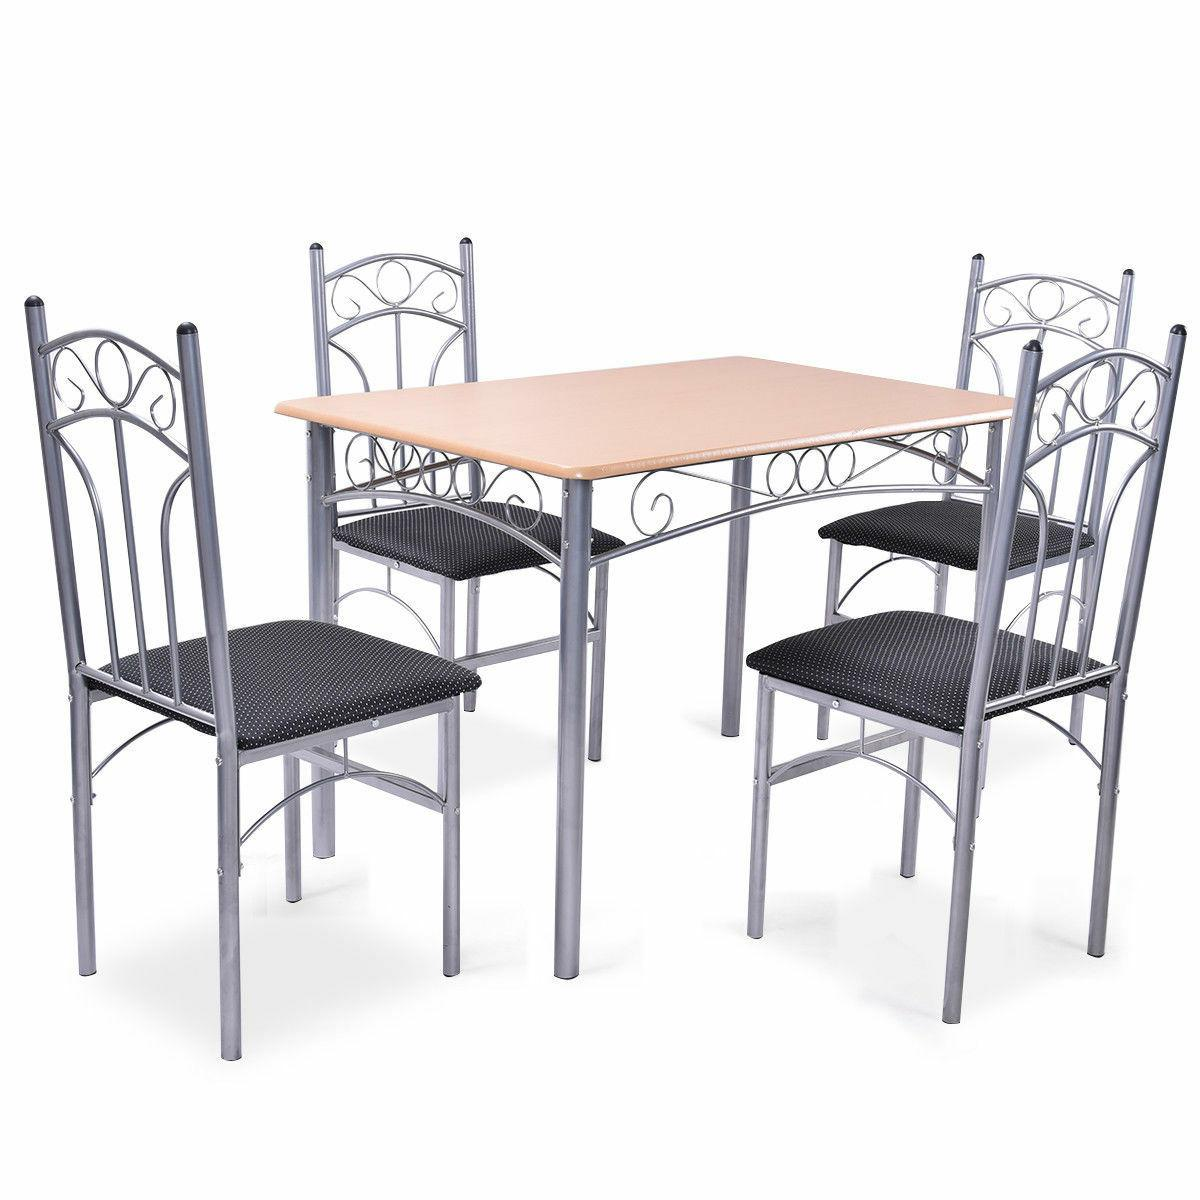 5pcs dining set table and 4 chairs